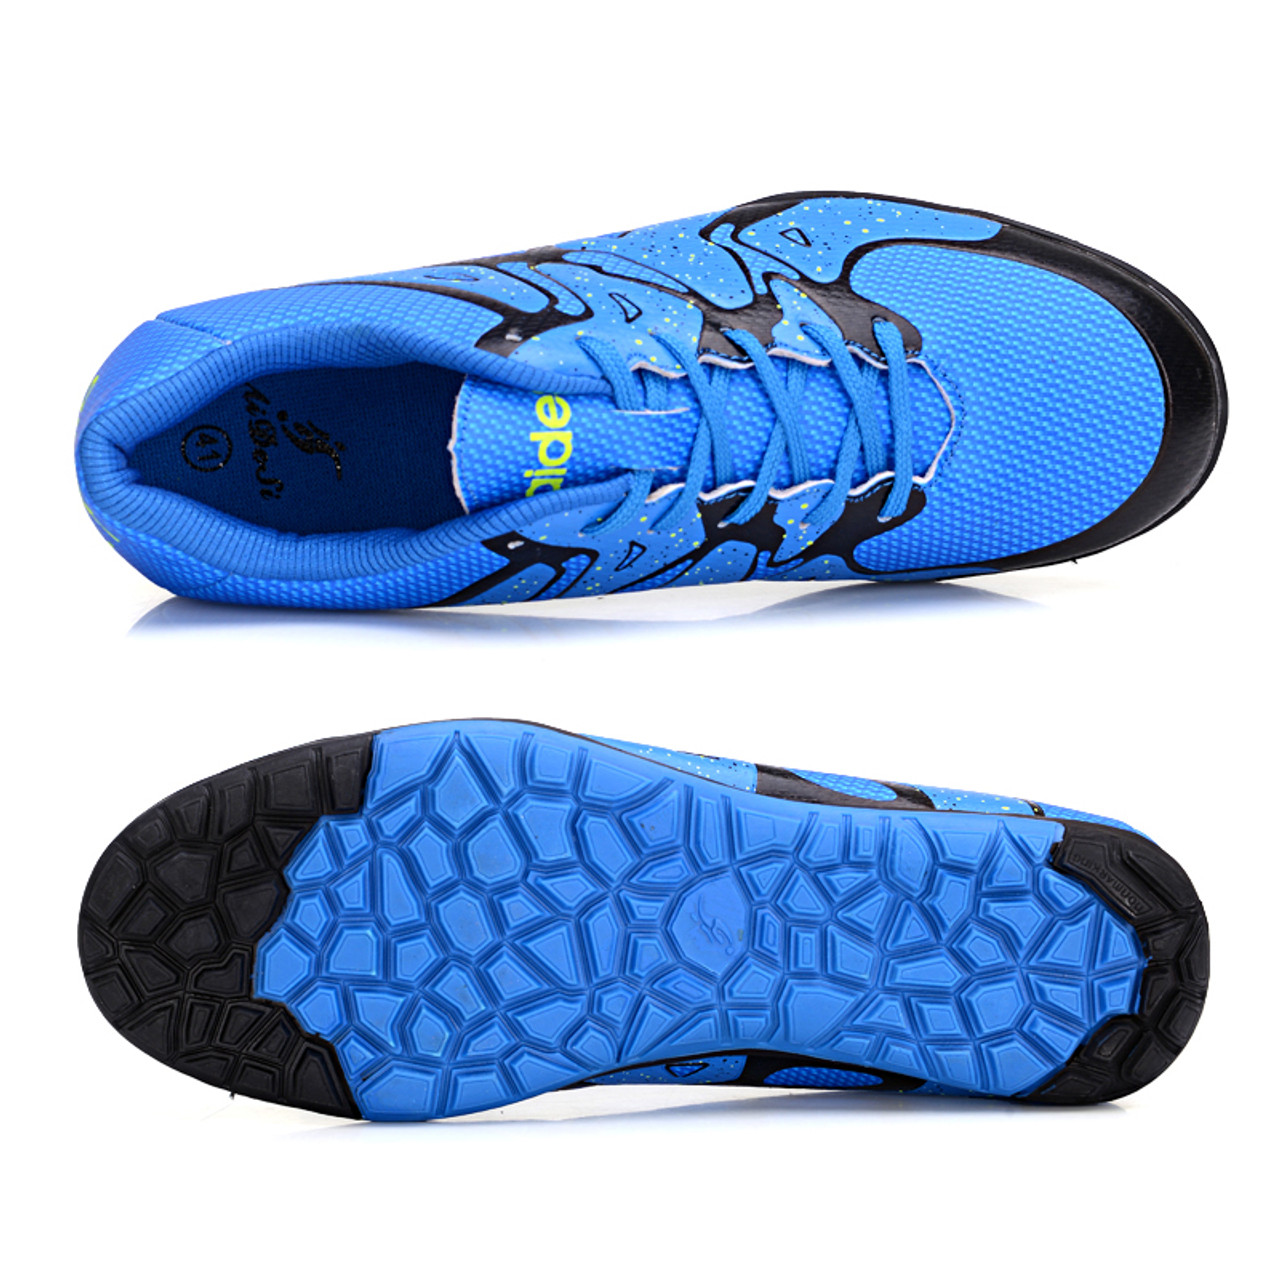 2804ce4a008 ... Kids indoor soccer shoes for men boot futsal shoes child soccer cleats  size 33-44 ...